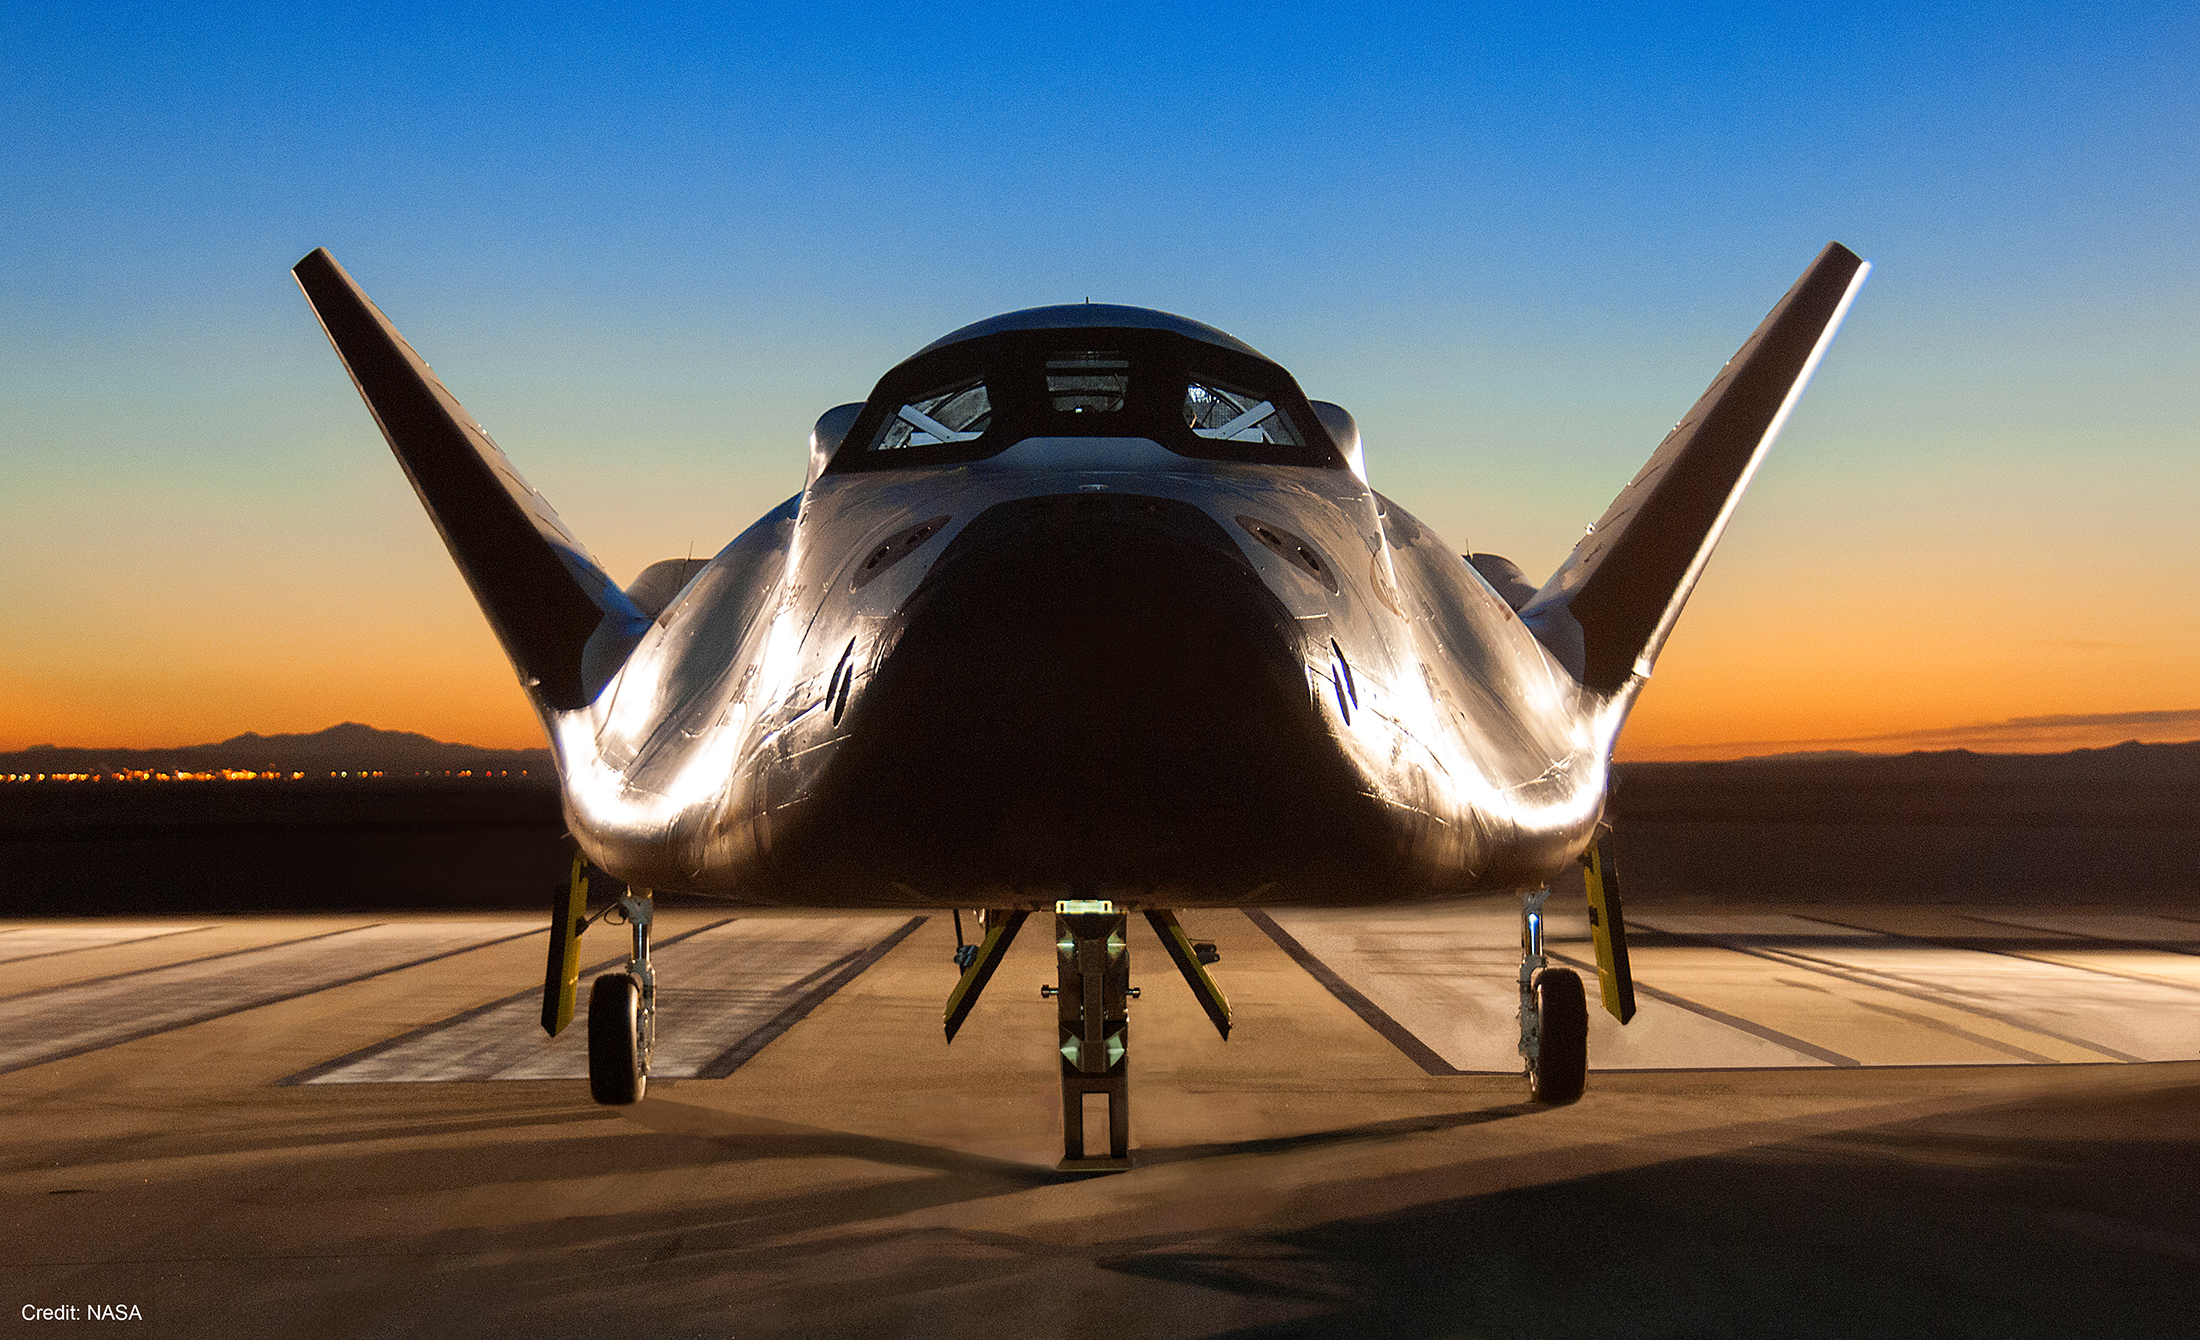 Nasa federal credit union security center - The Dream Chaser Photographed At Dawn On The Nasa Armstrong Research Center Runway